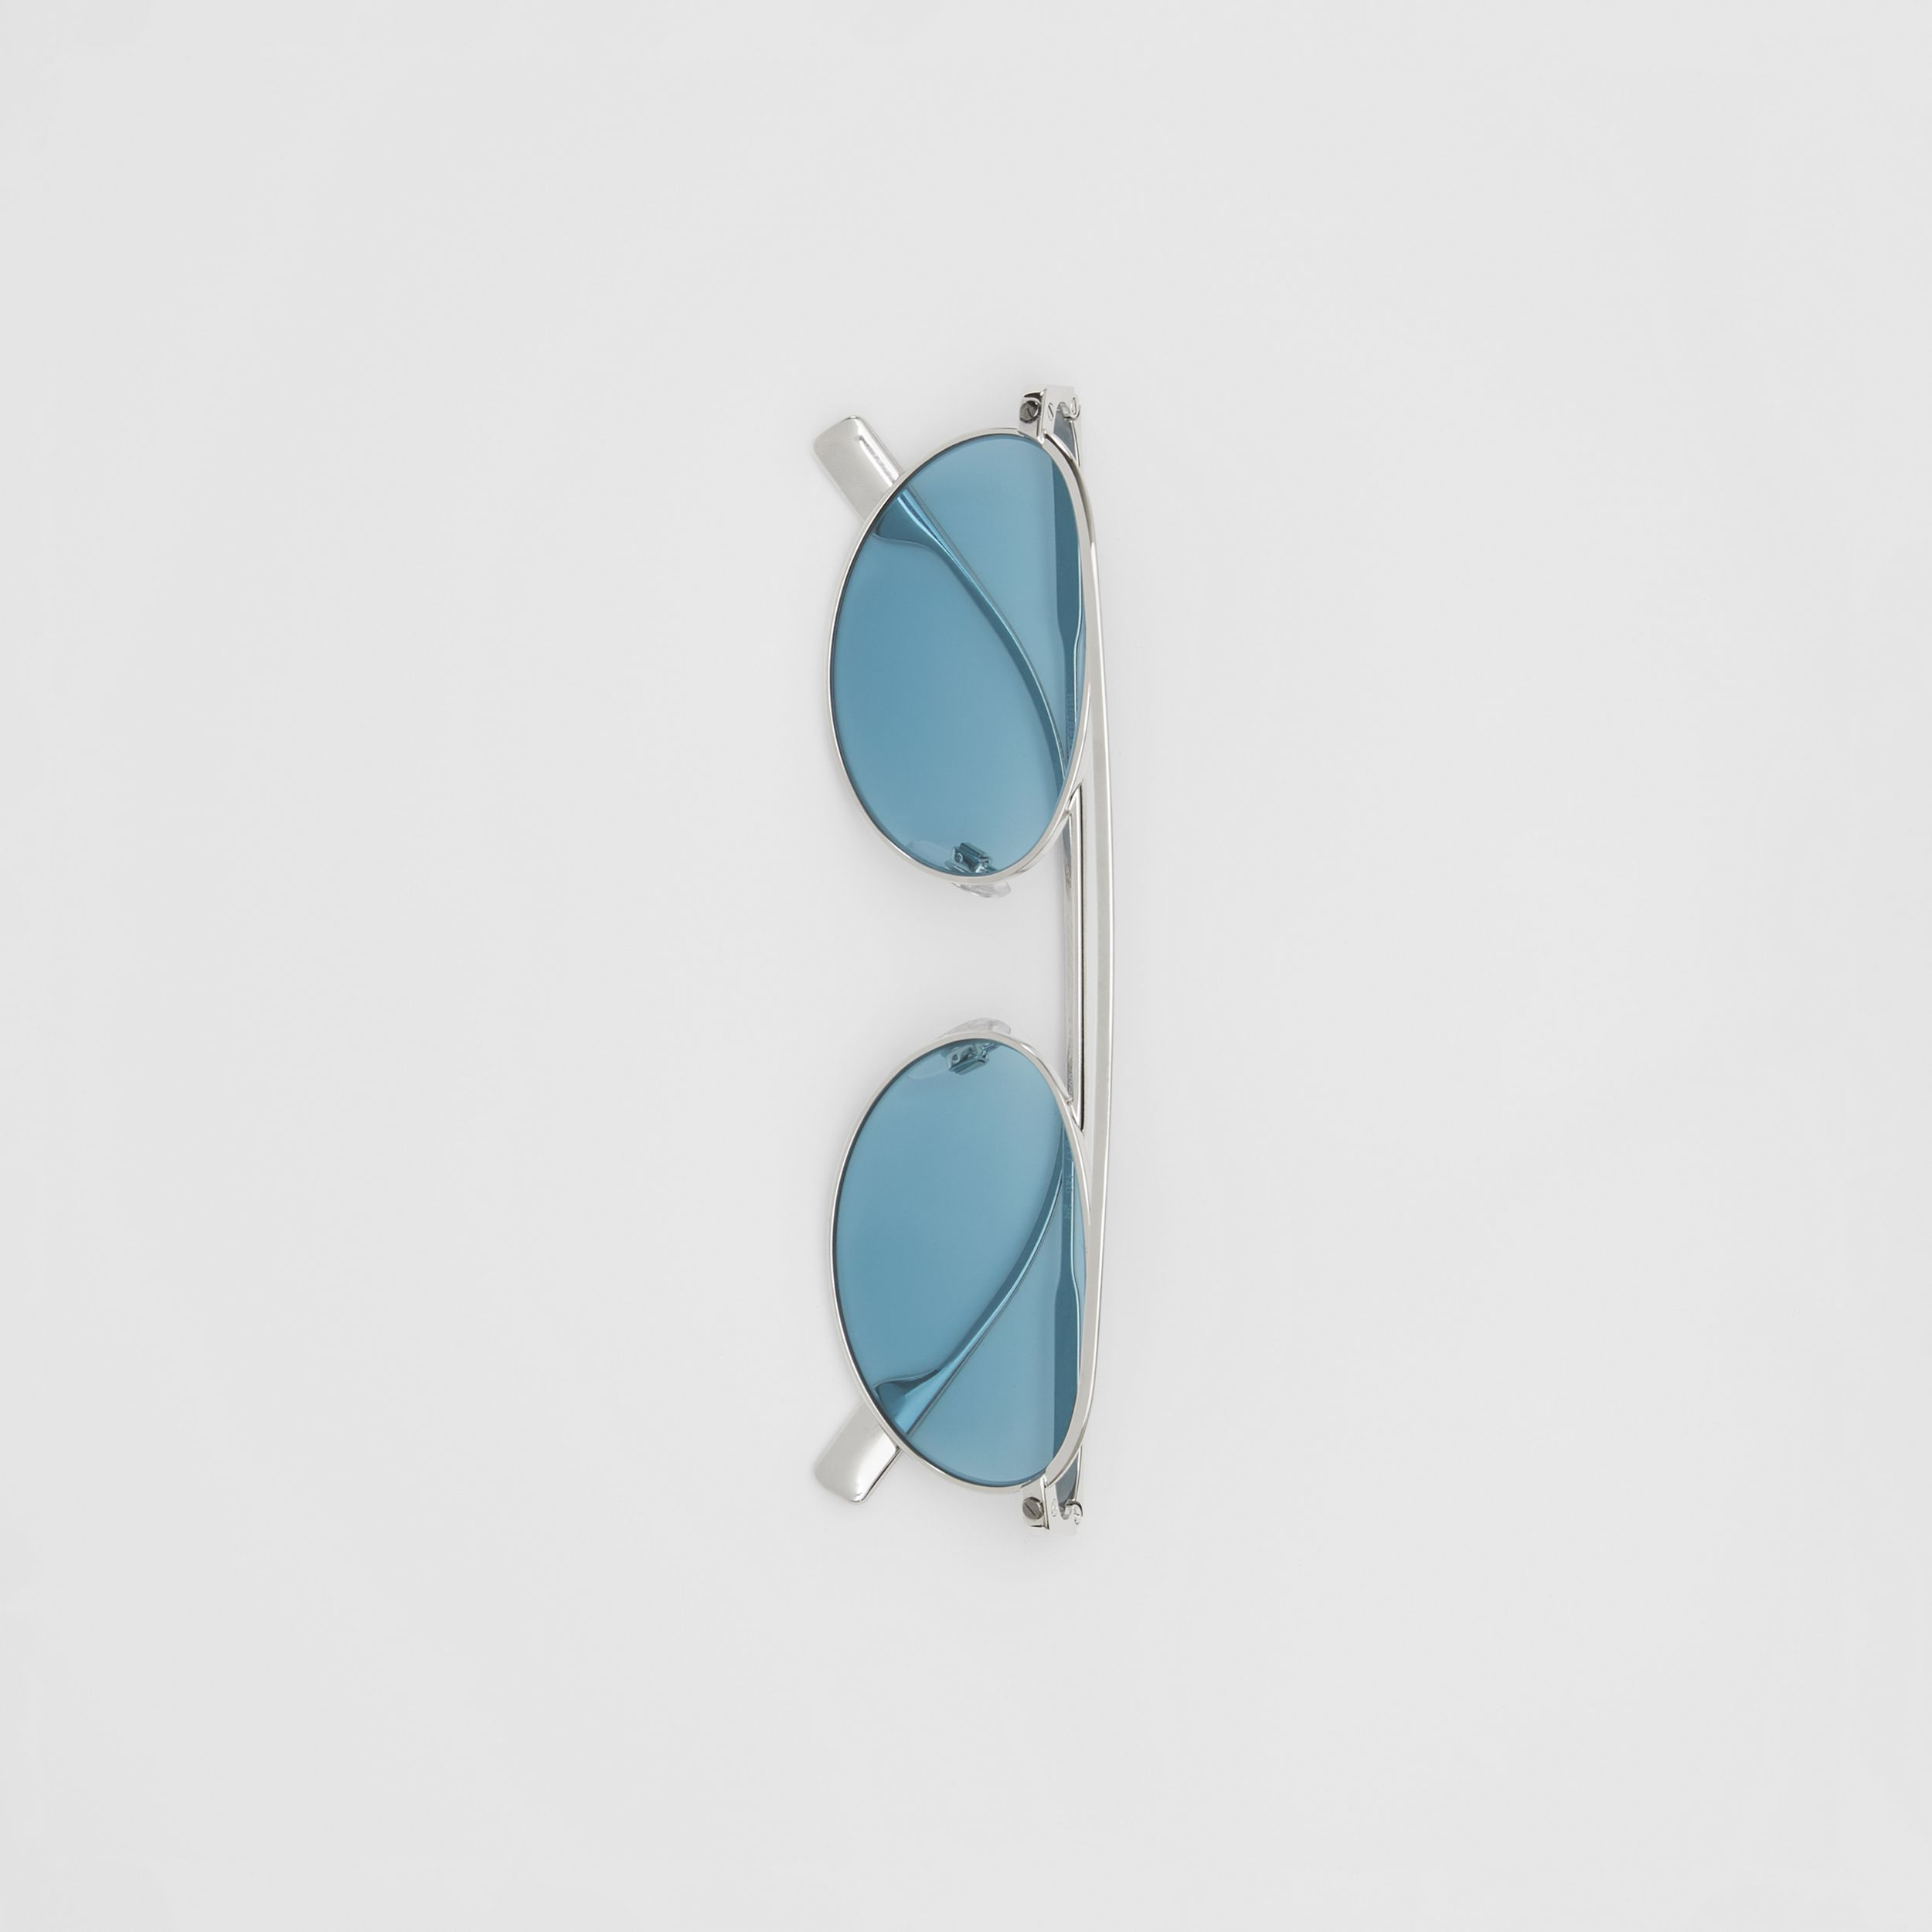 Oval Frame Sunglasses in Light Blue - Women | Burberry - 4